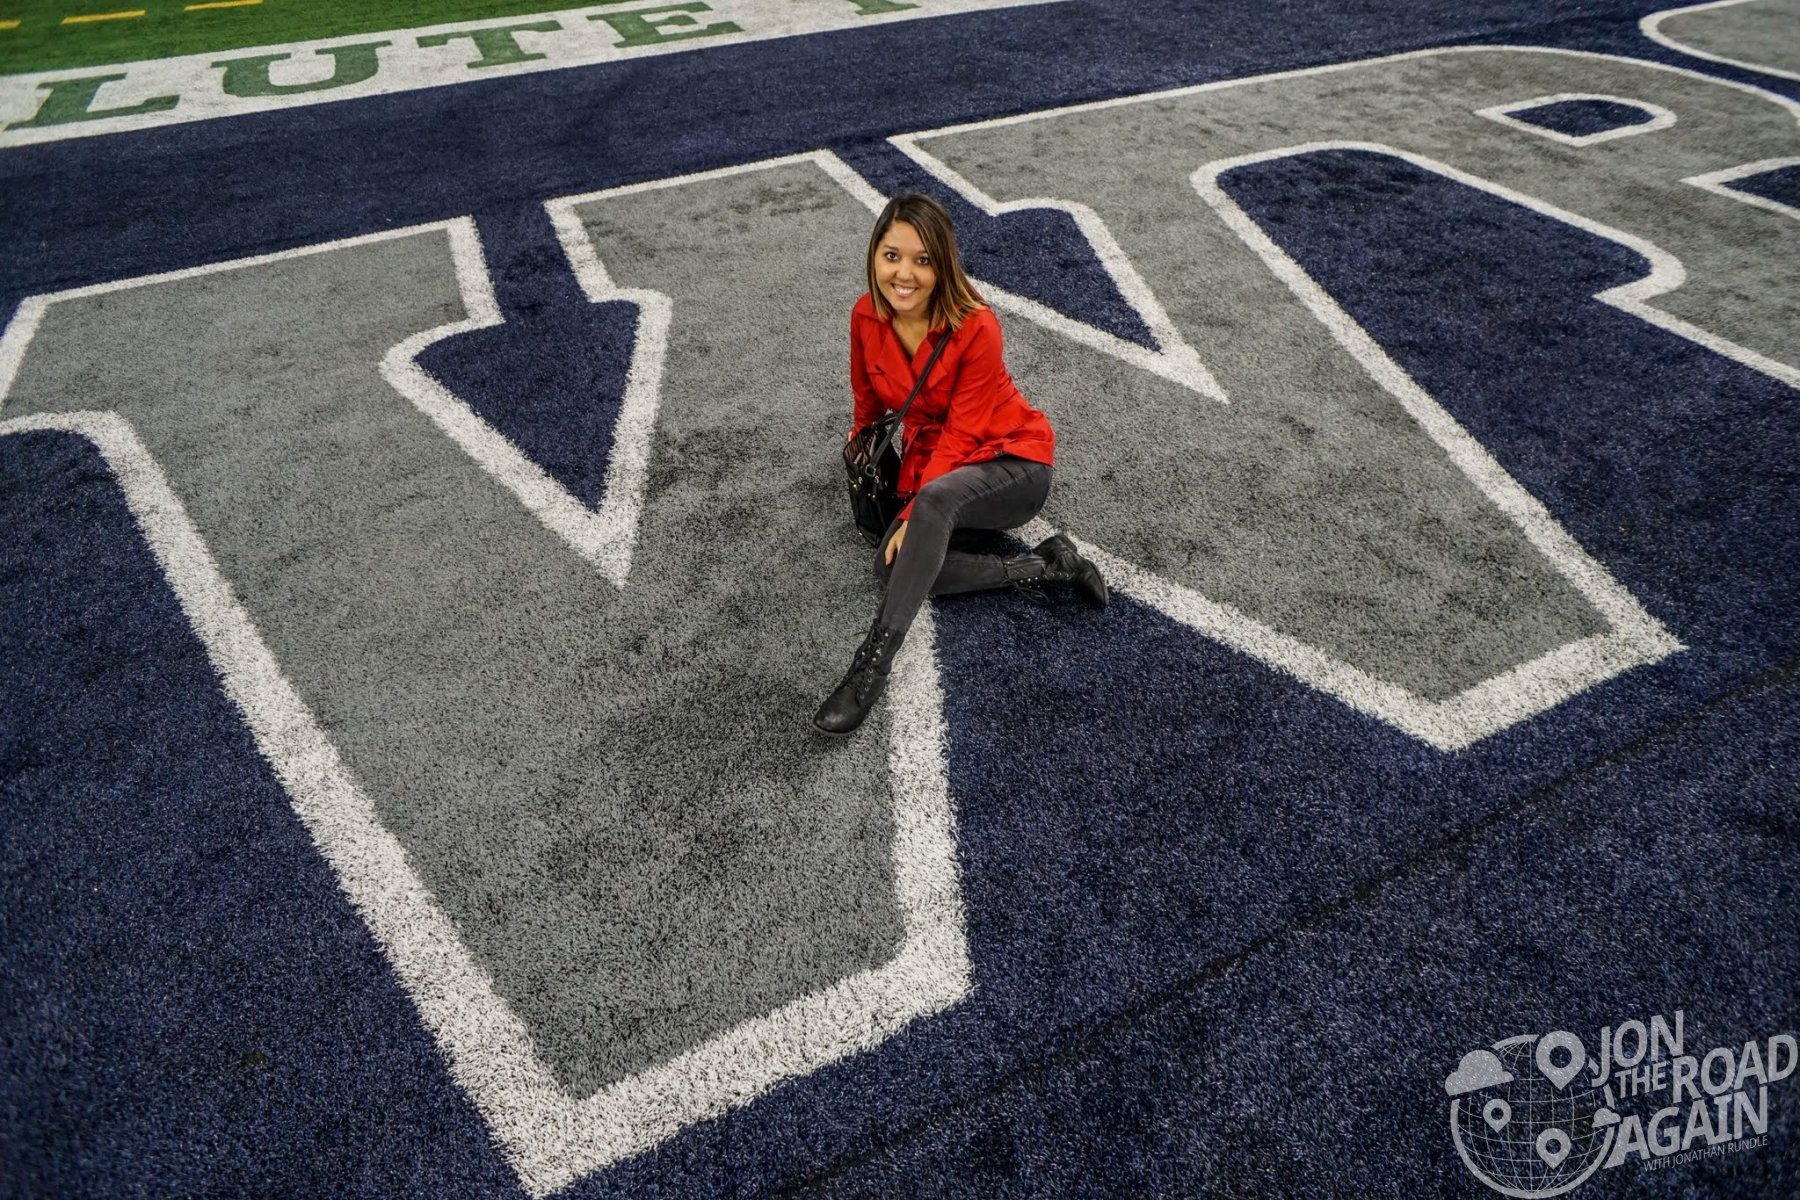 Whitney poses with the W in the endzone